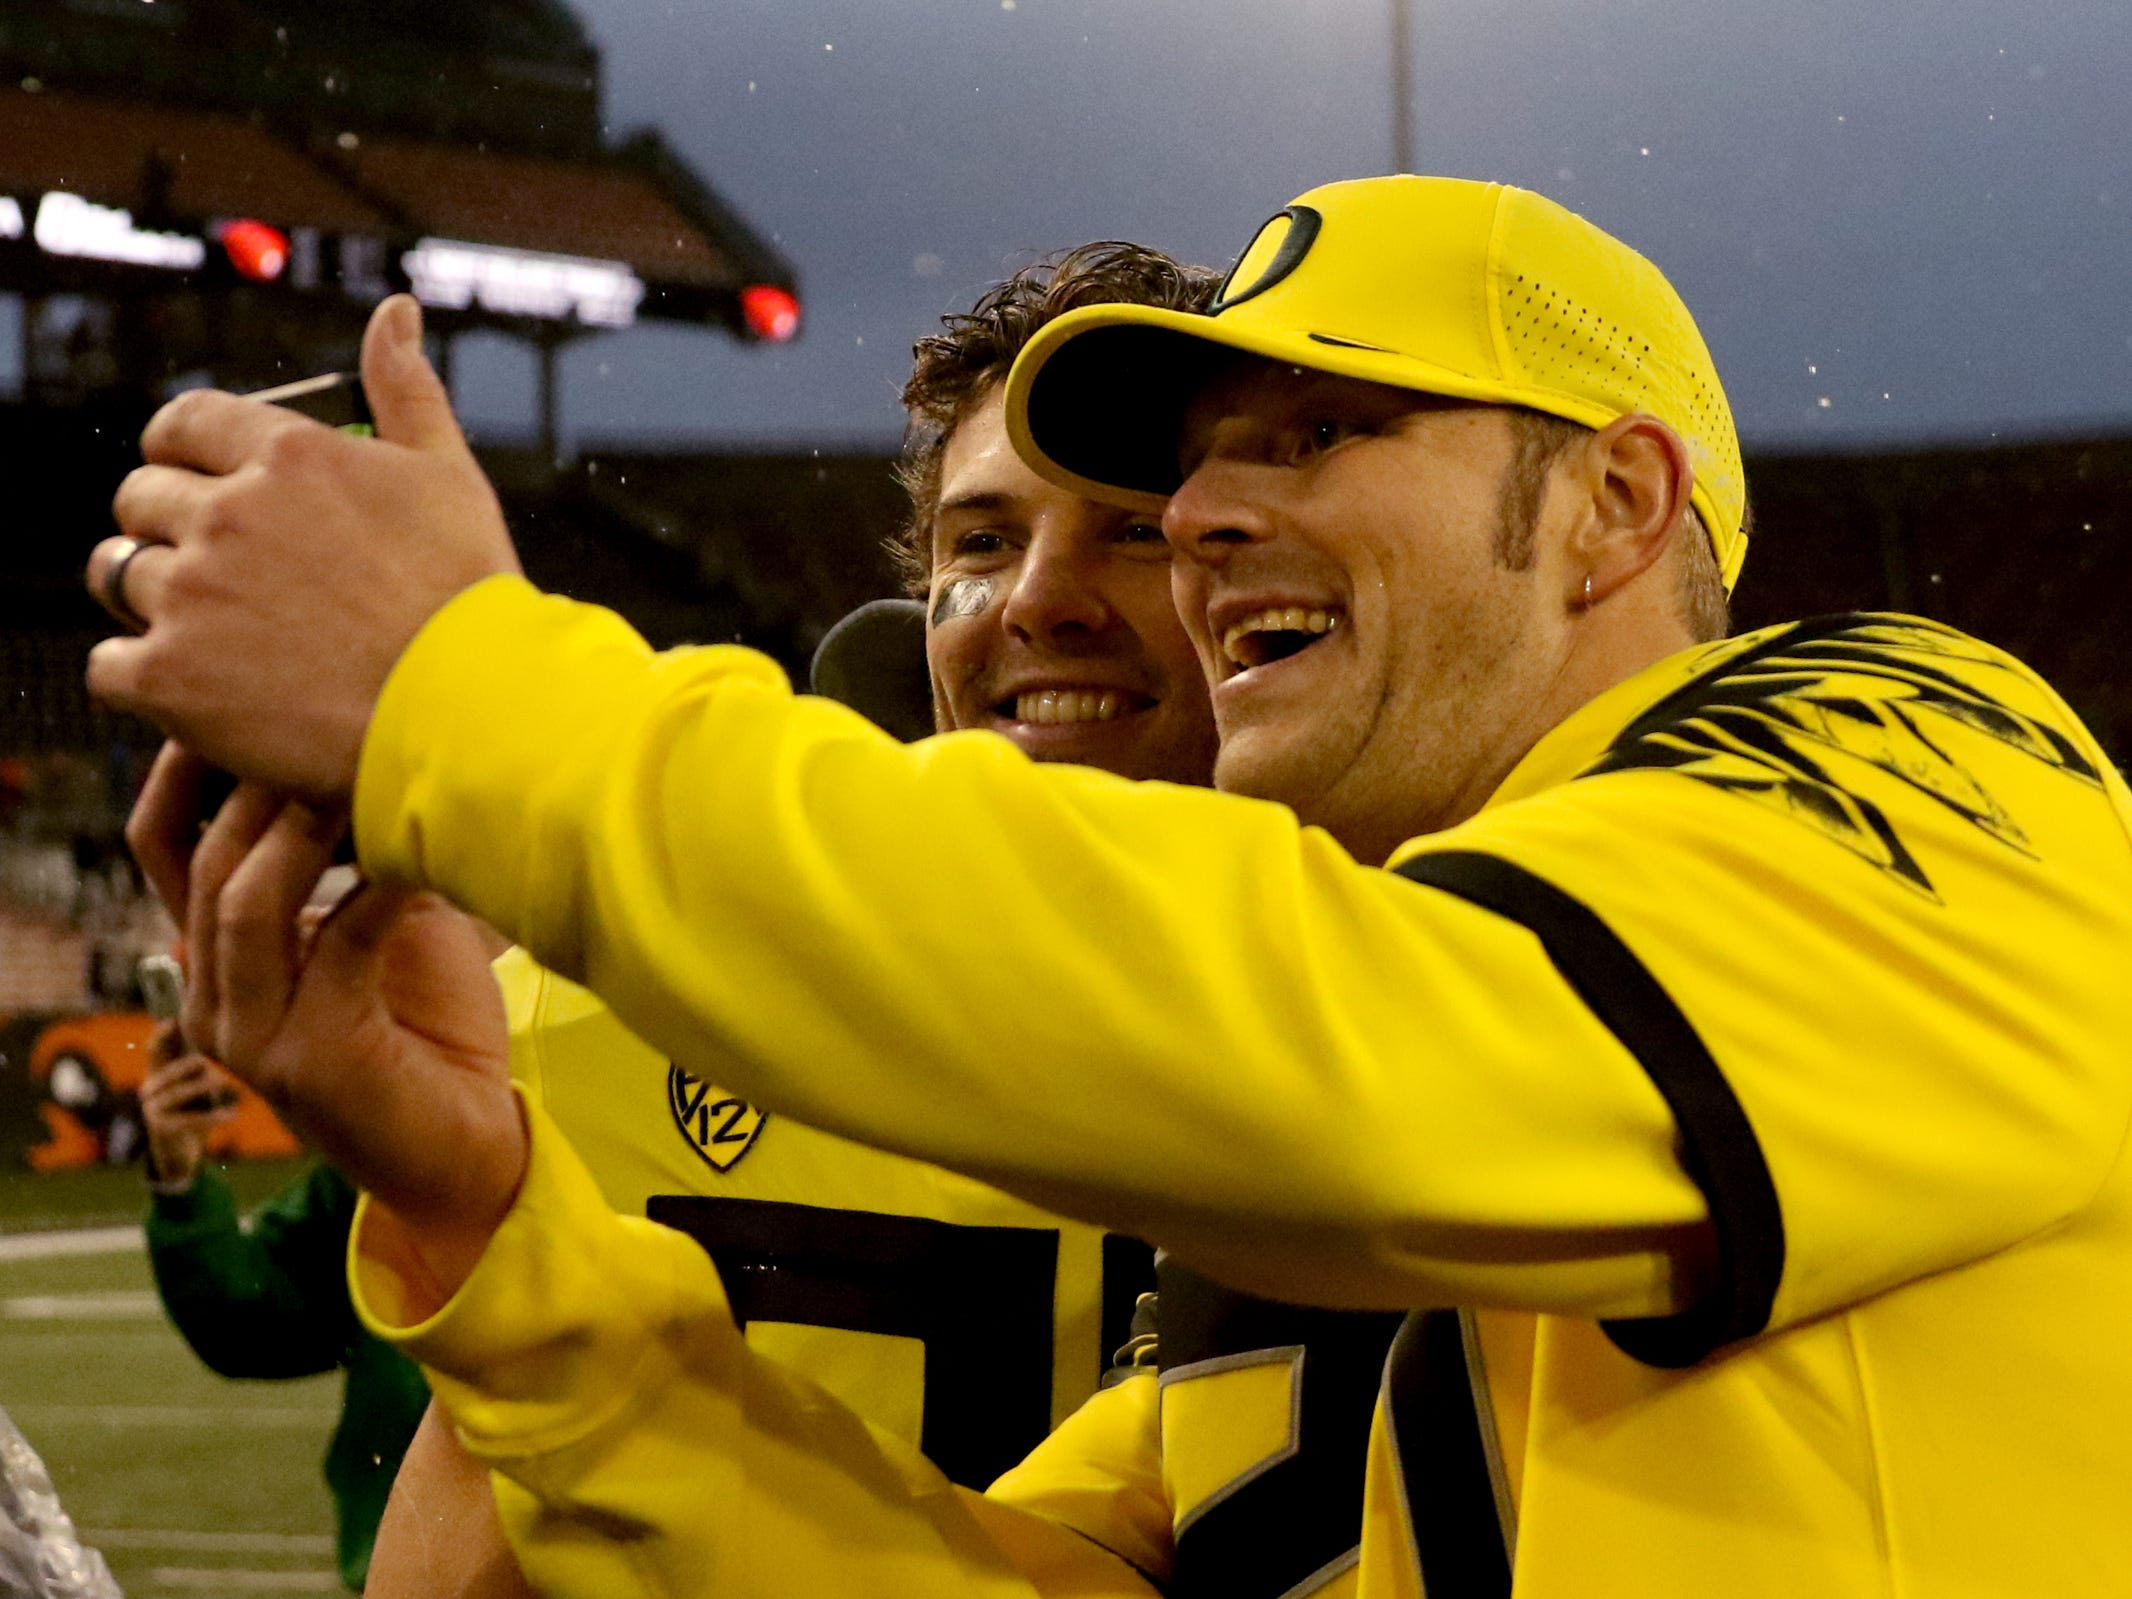 Ducks fans Kevin Case takes a photo with Oregon's Brady Breeze (25) following the Oregon vs. Oregon State Civil war football game at Oregon State University in Corvallis on Friday, Nov. 23, 2018. The Ducks won the game 55-15.